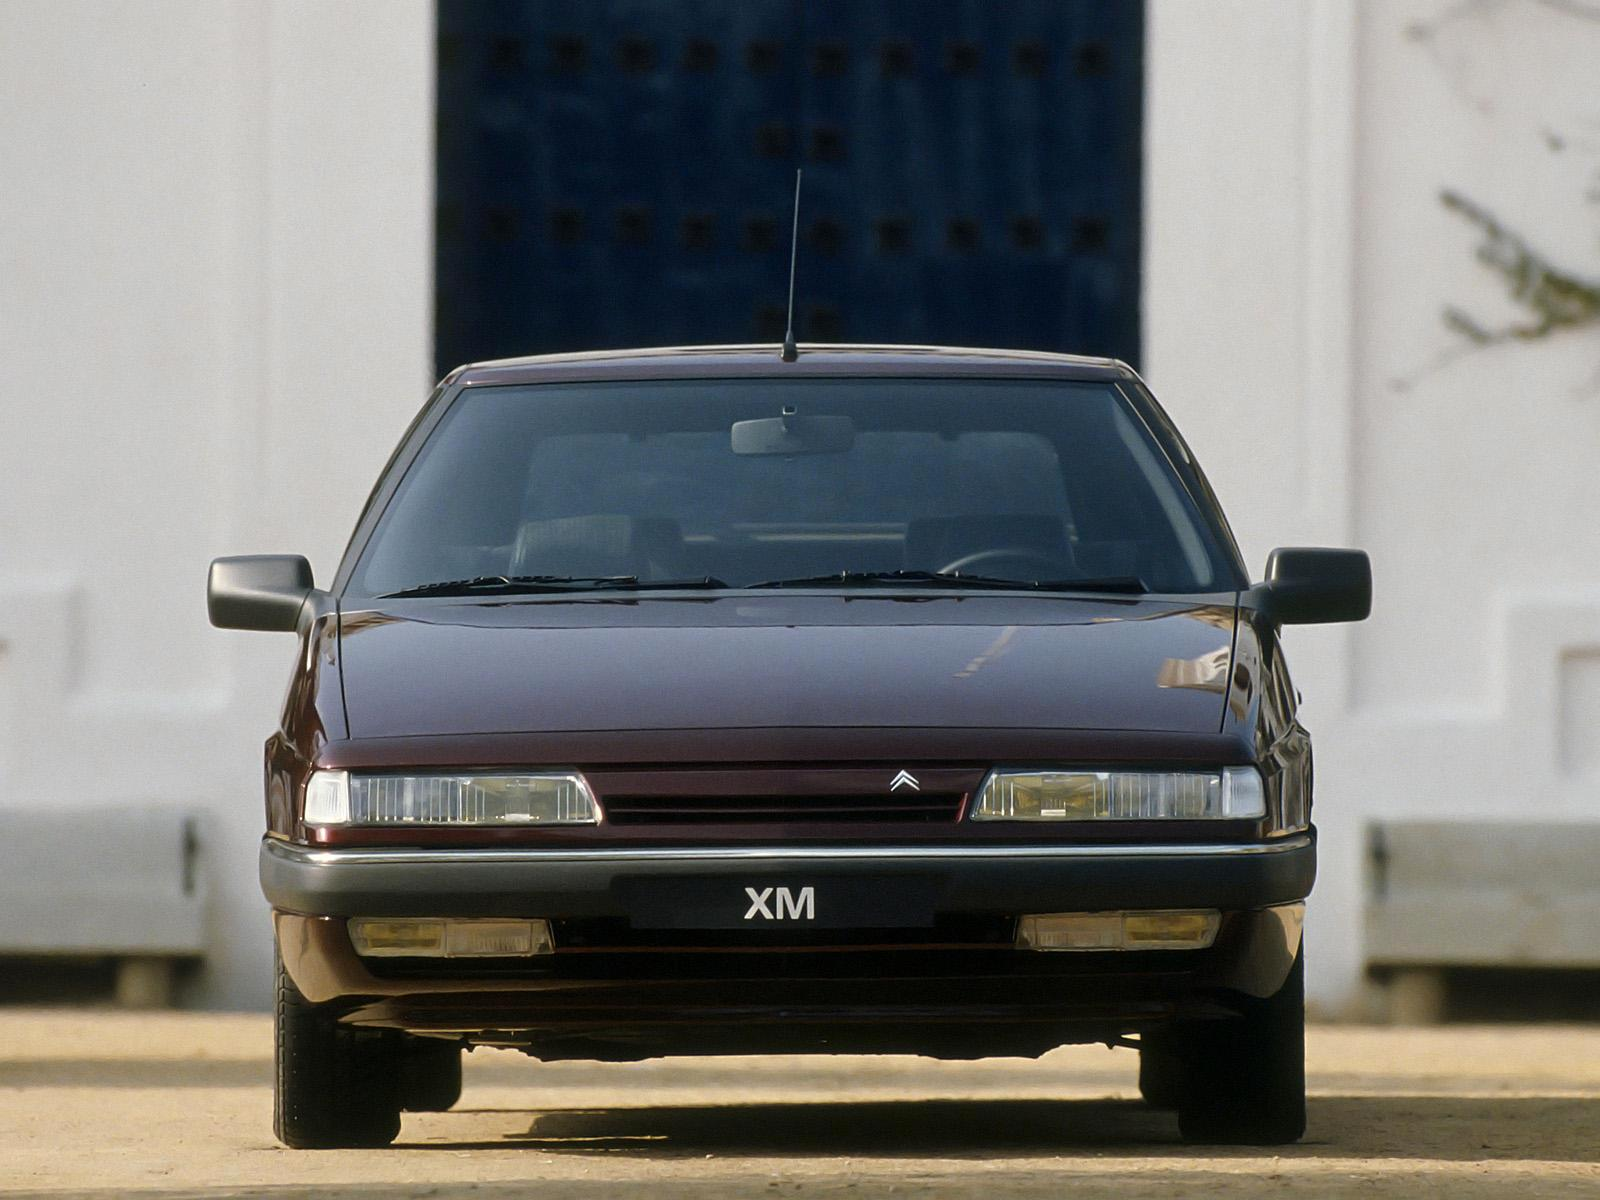 XM 1989 front view